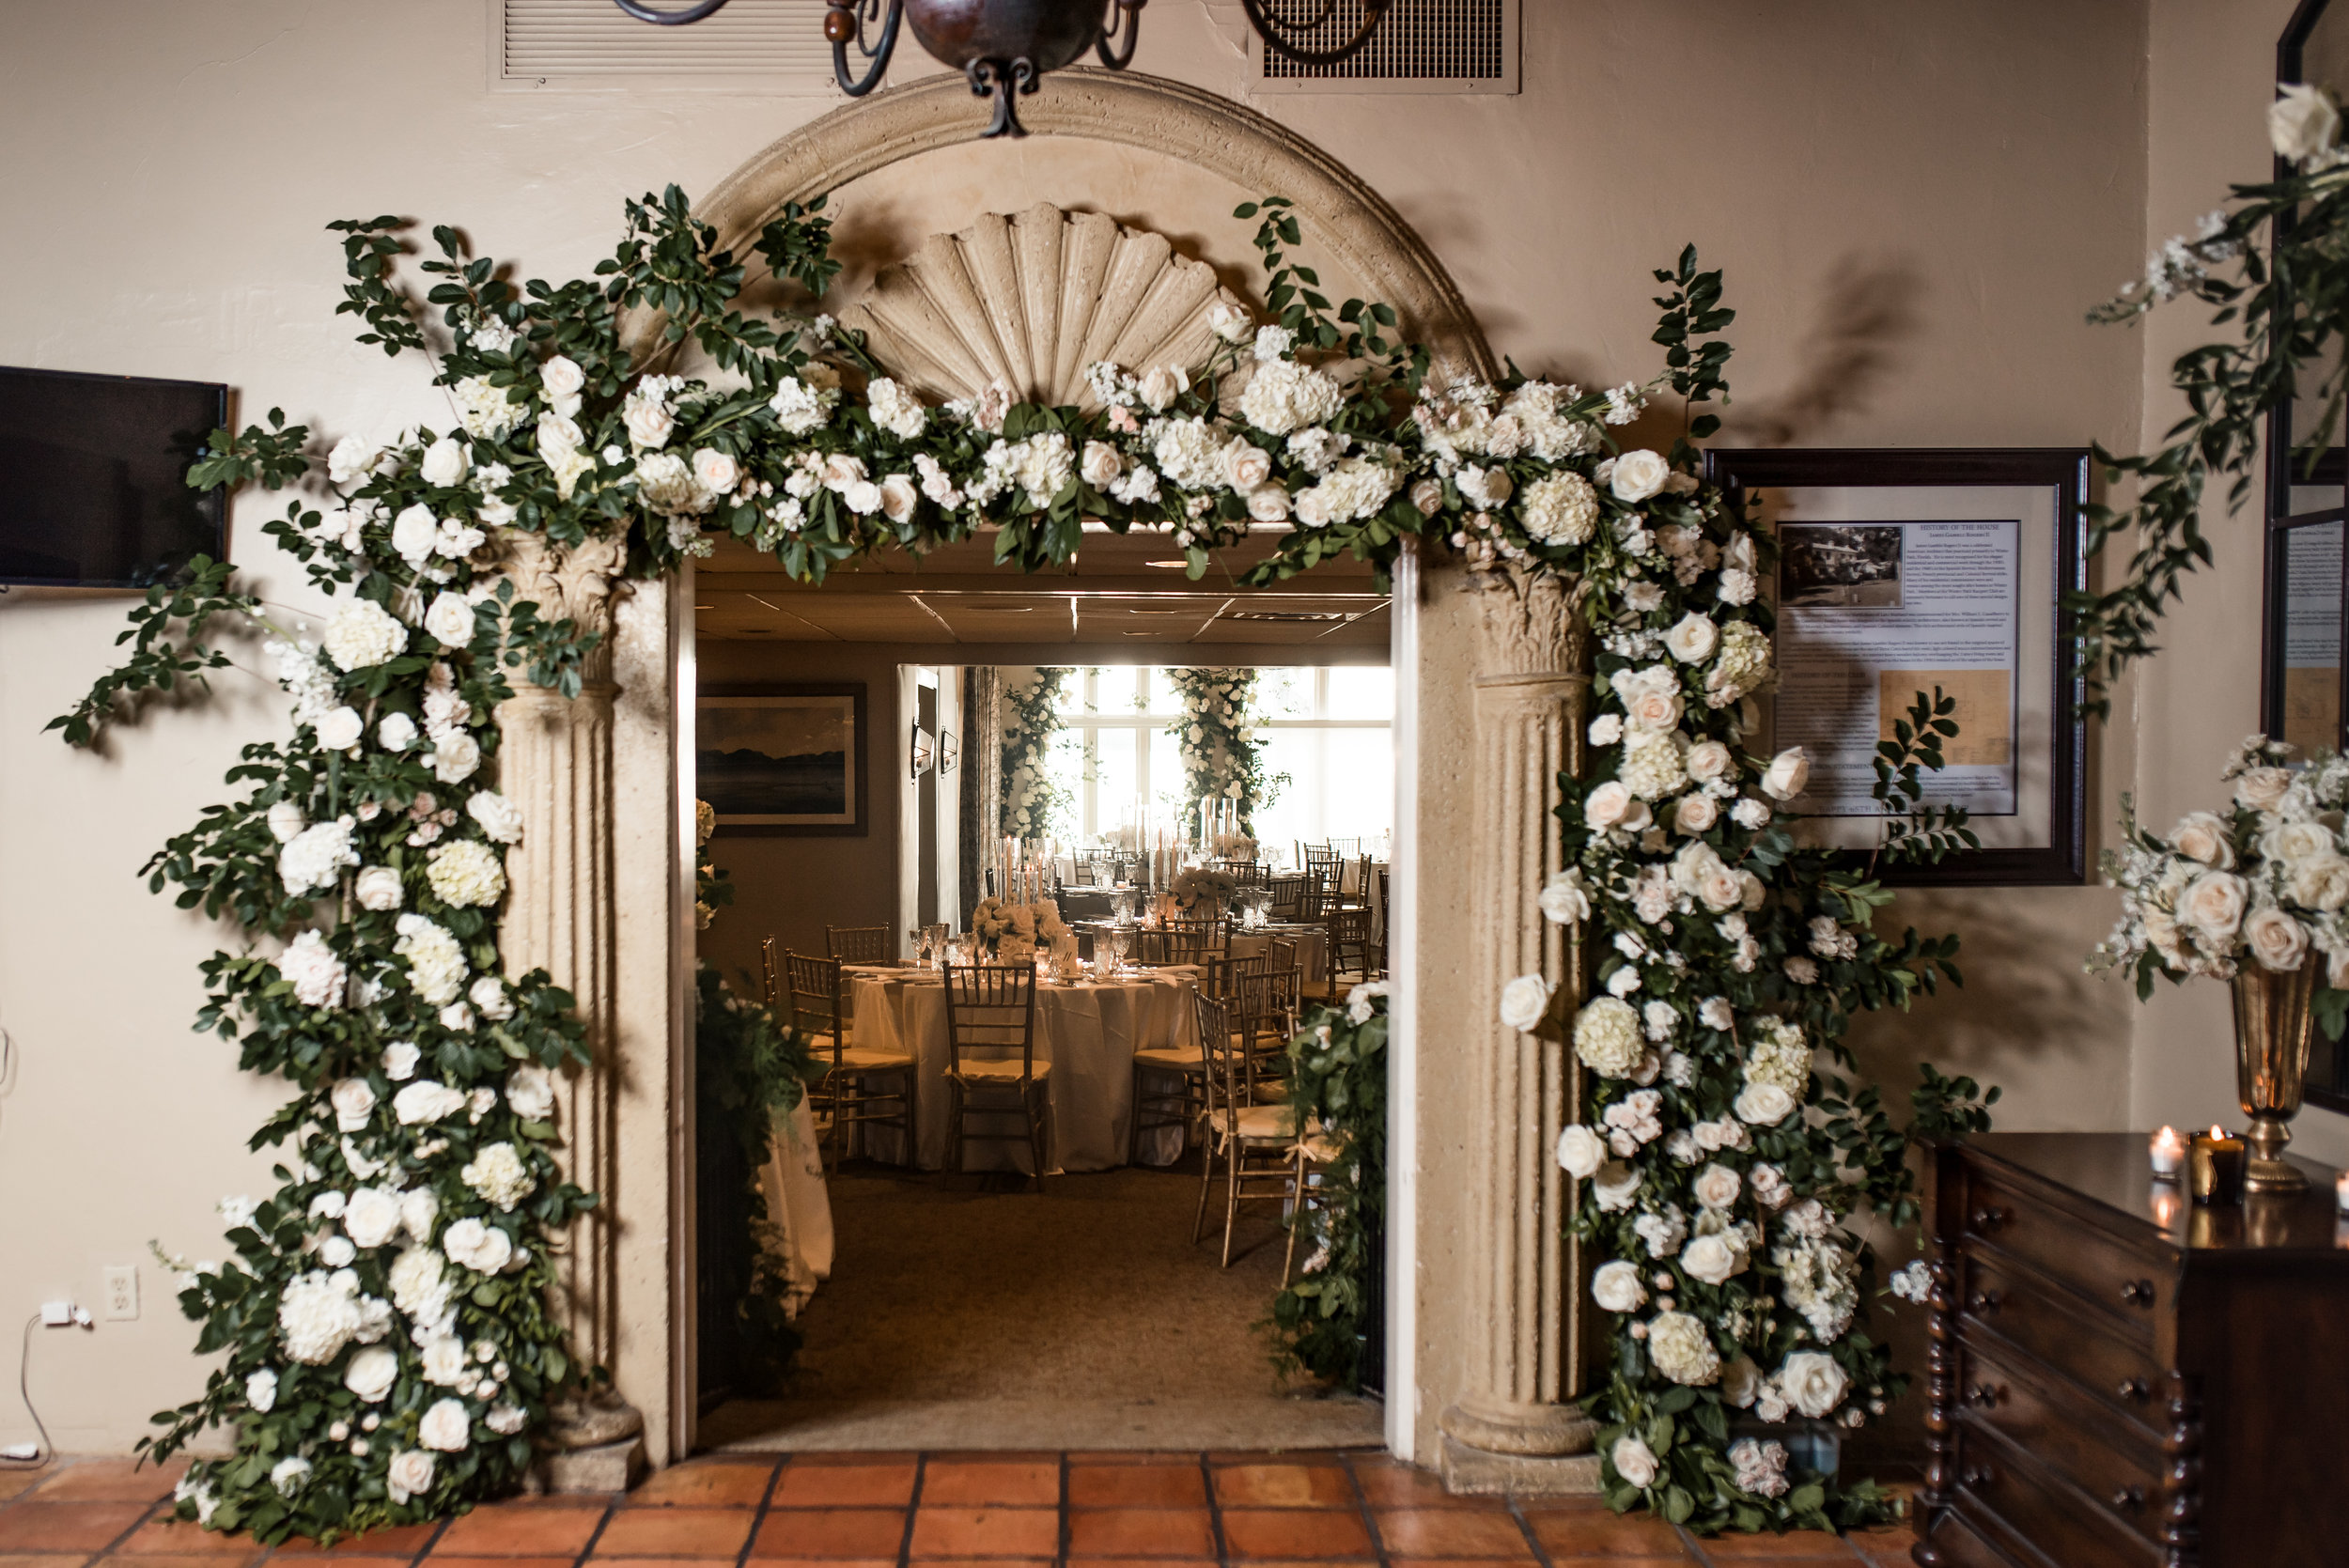 Winter Park Racquet Club Wedding with Velvet & Twine Florals, Planning by Blue Ribbon Weddings